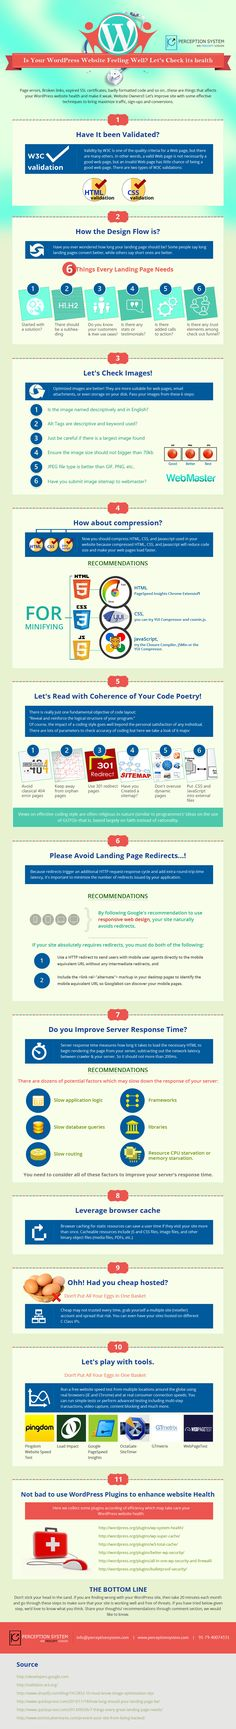 Give your website a regular check up www.socialmediamamma.com Wordpress Infographic